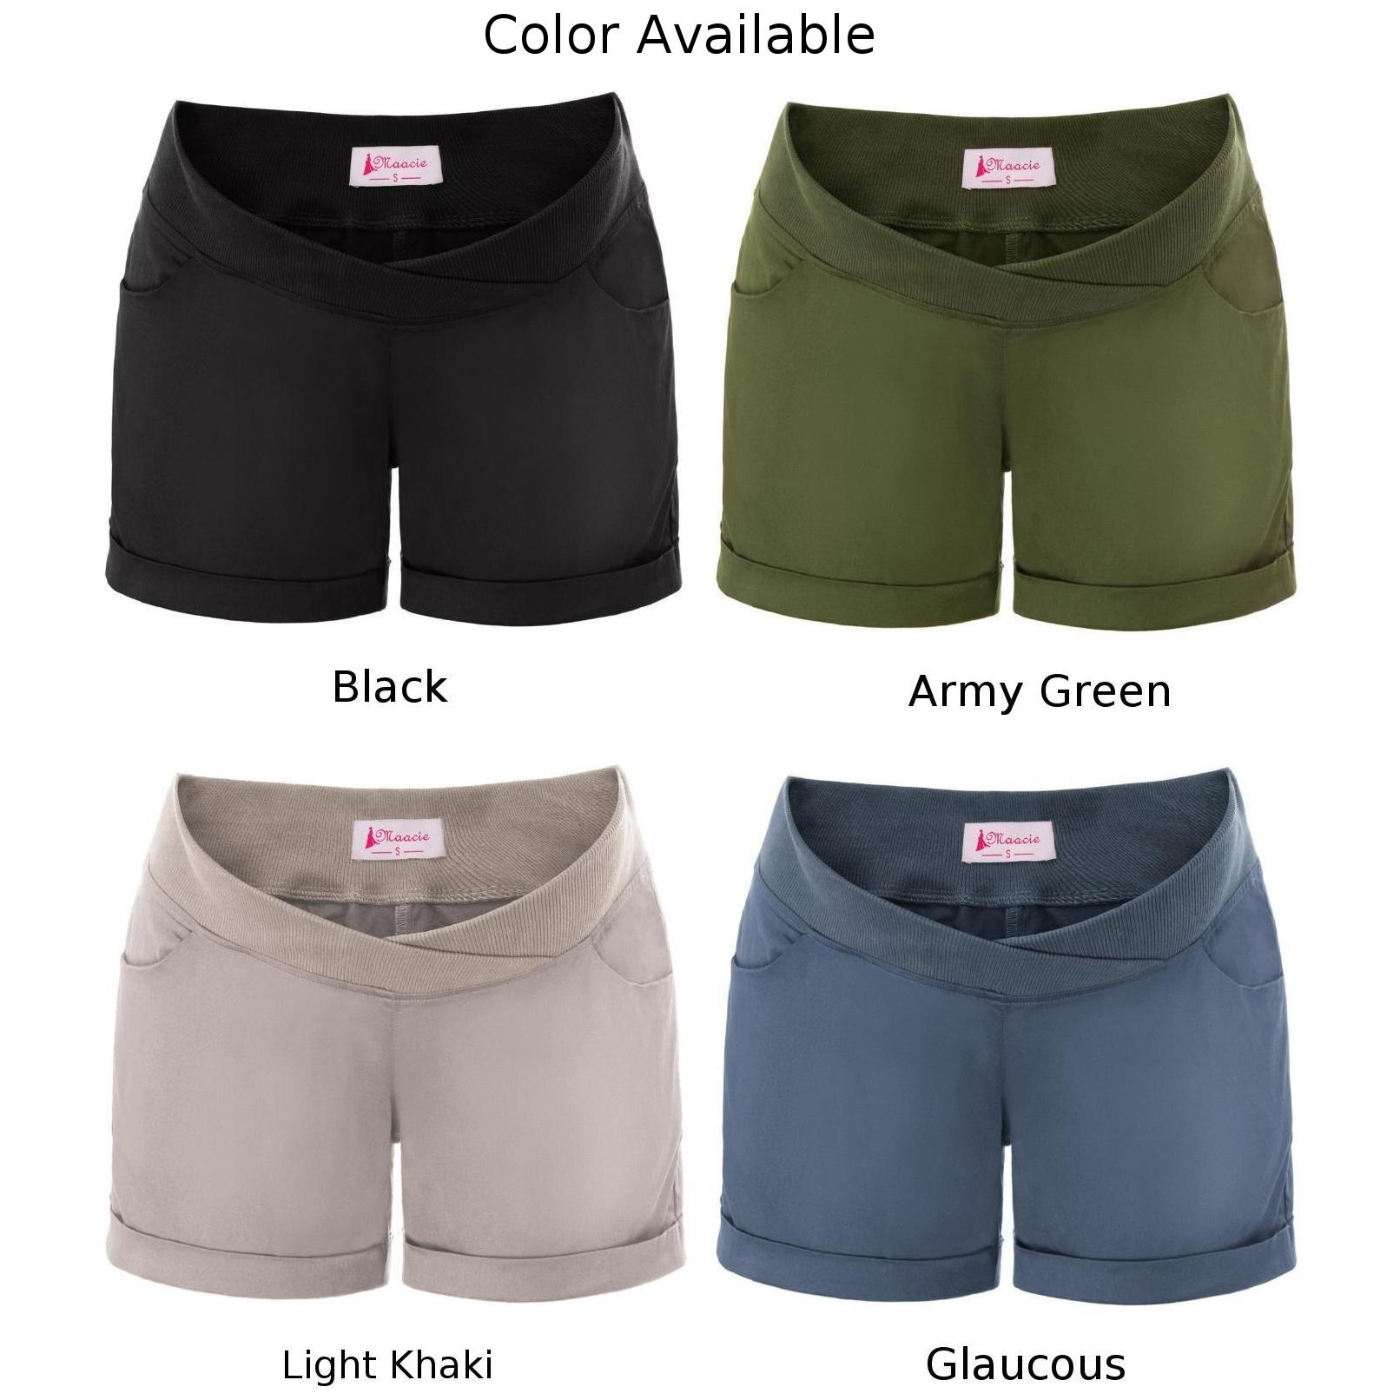 Solid Shorts Plain Vintage Beachwear Womens Ladies Maternity Elastic Casual Summer Homewear Pregnant Low rise New in Shorts from Women 39 s Clothing